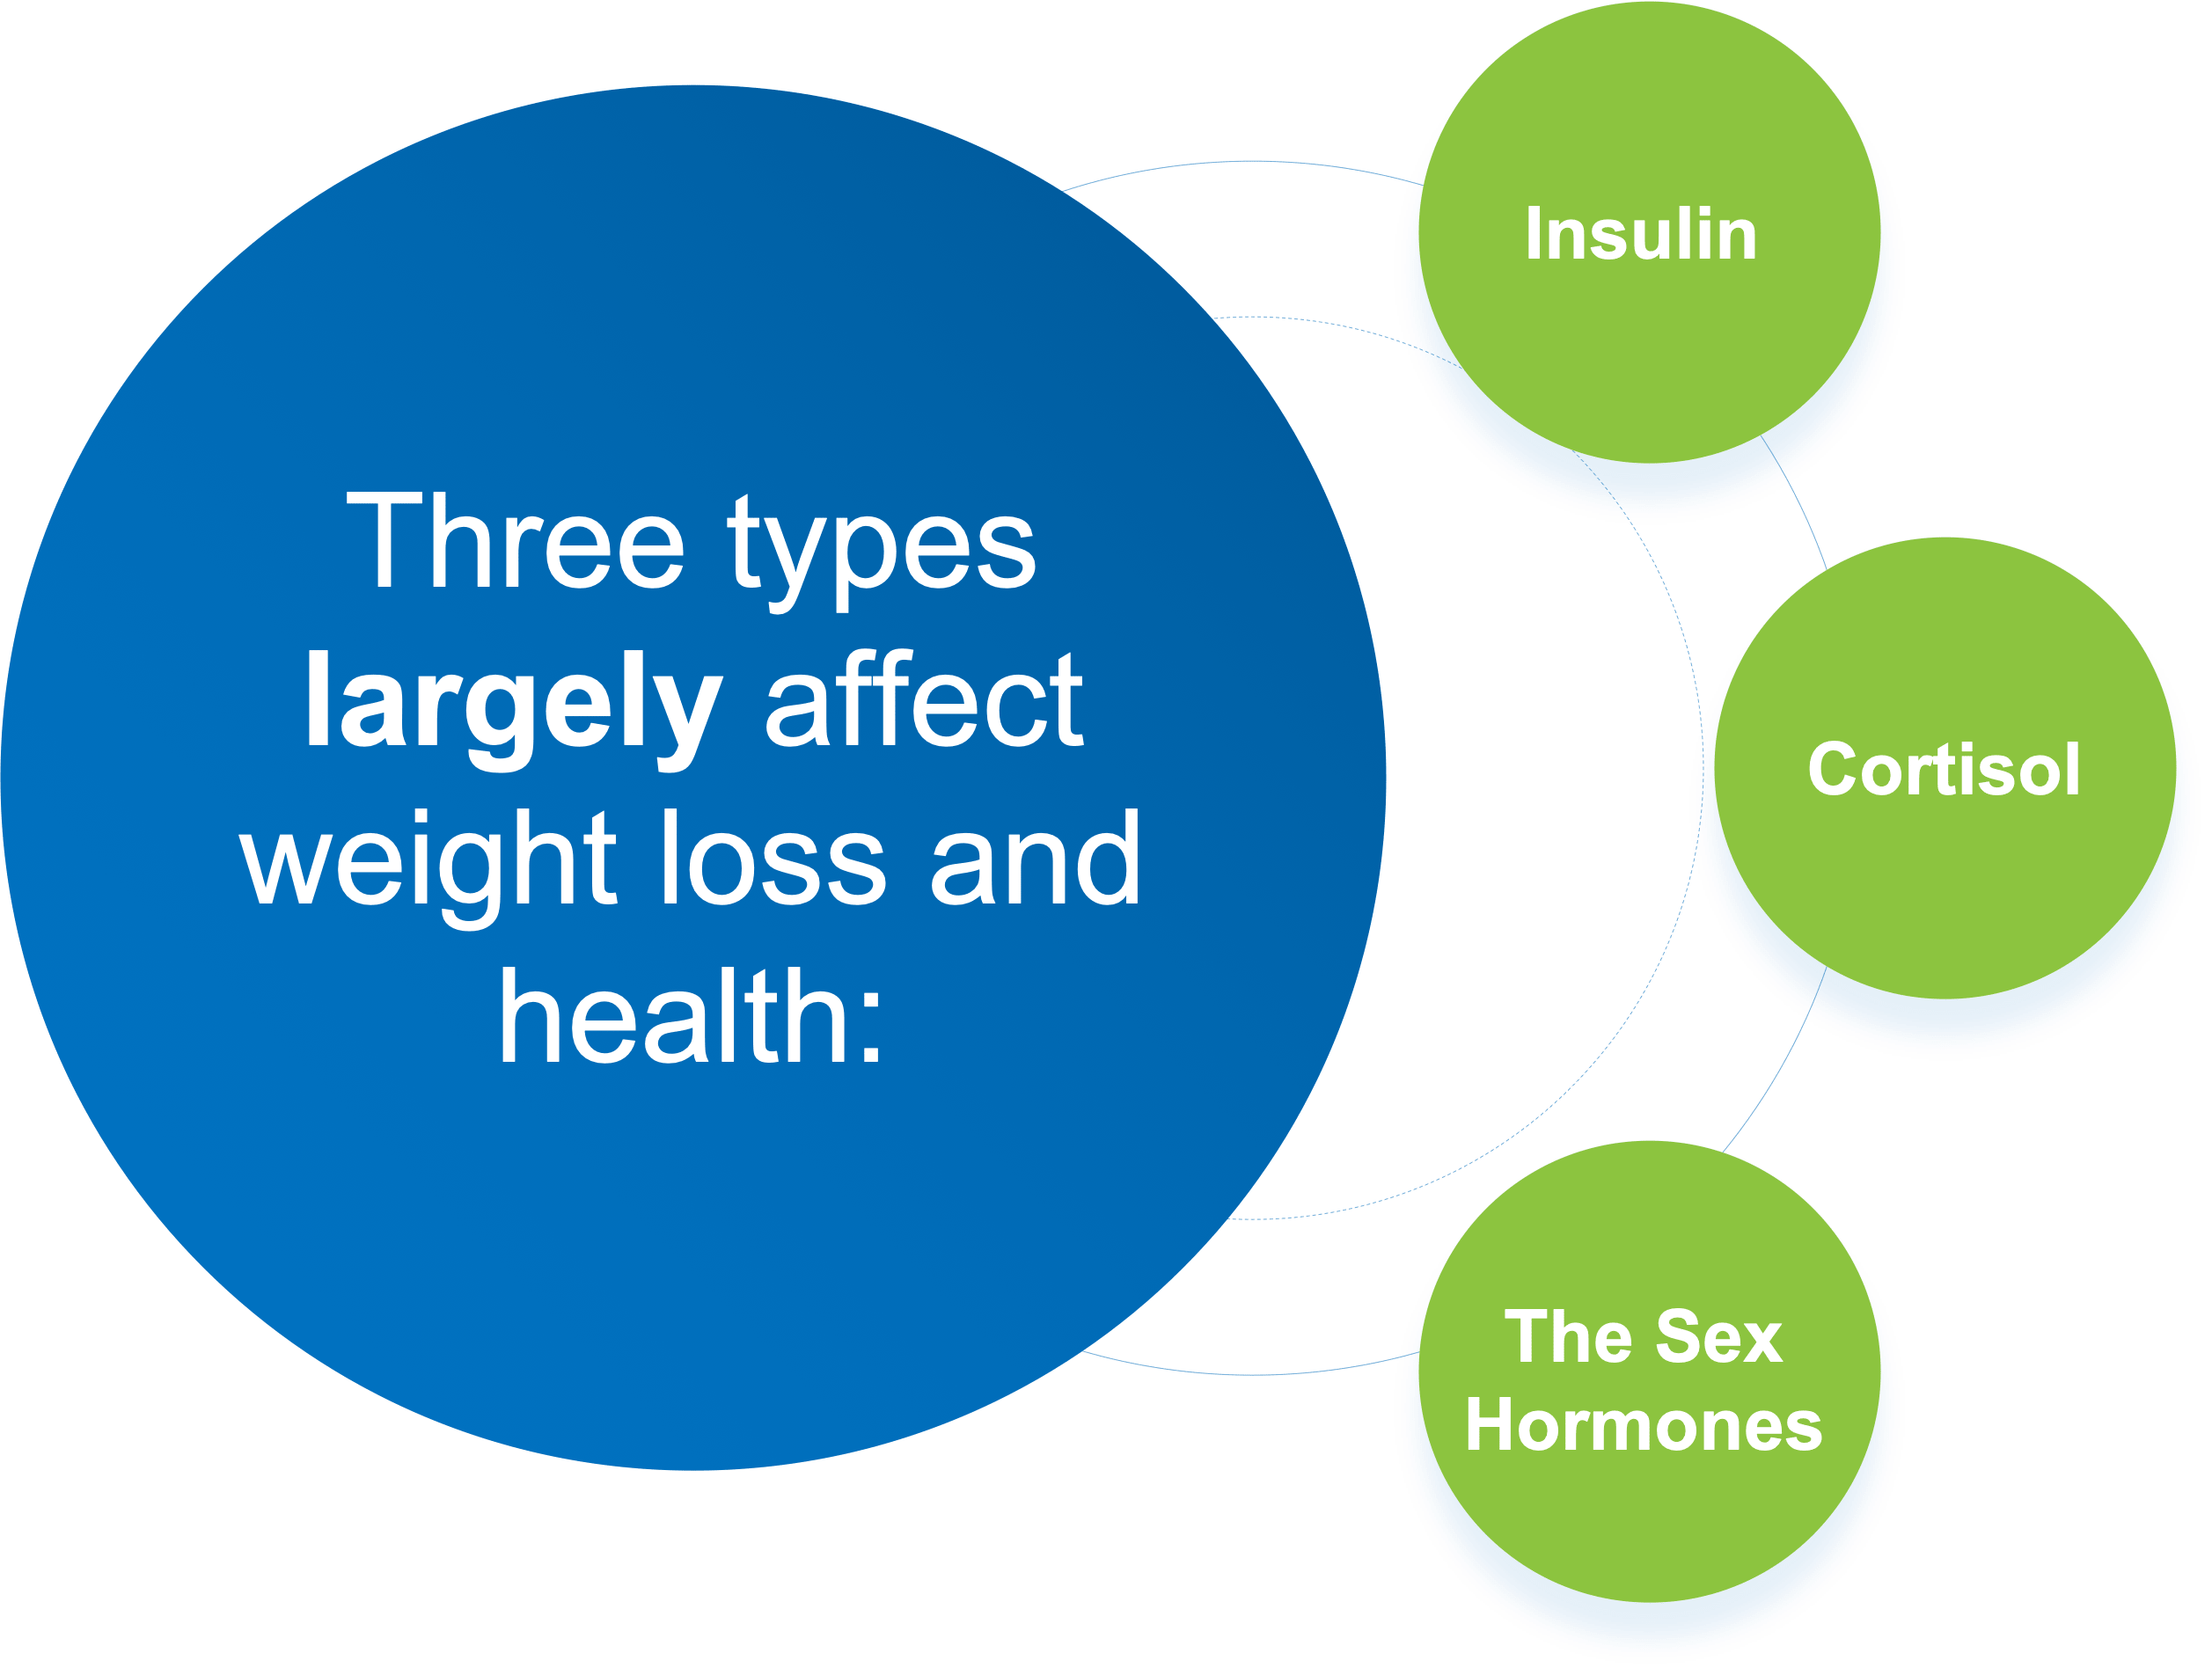 3 types of hormones that largely affect weight loss - illustration